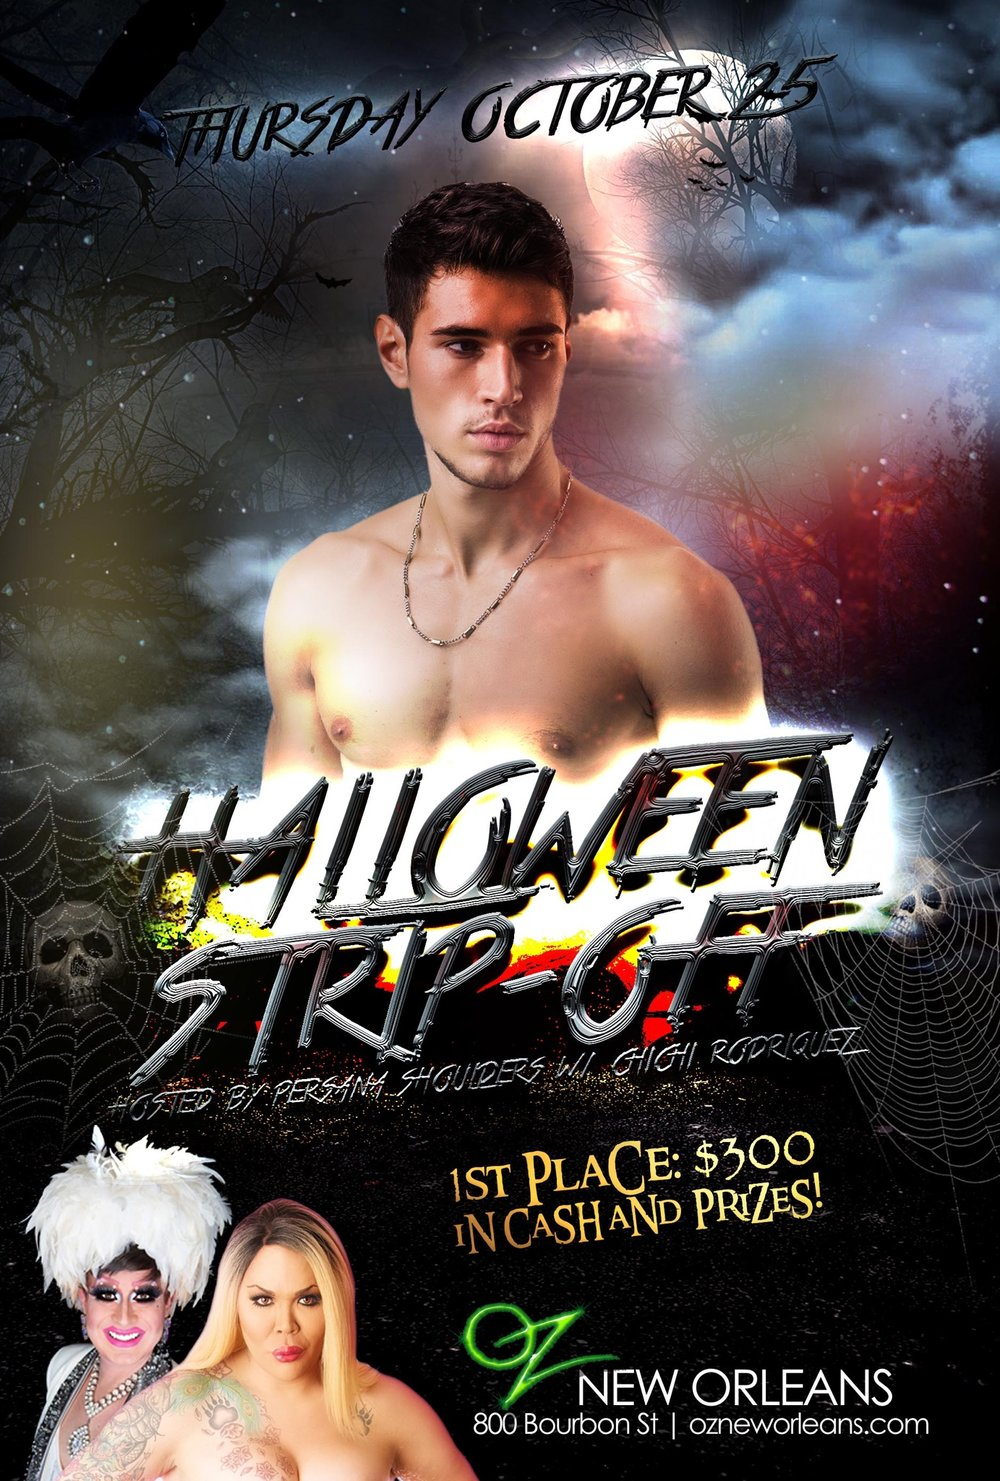 20181027_HalloweenStripOff_FULL.JPG